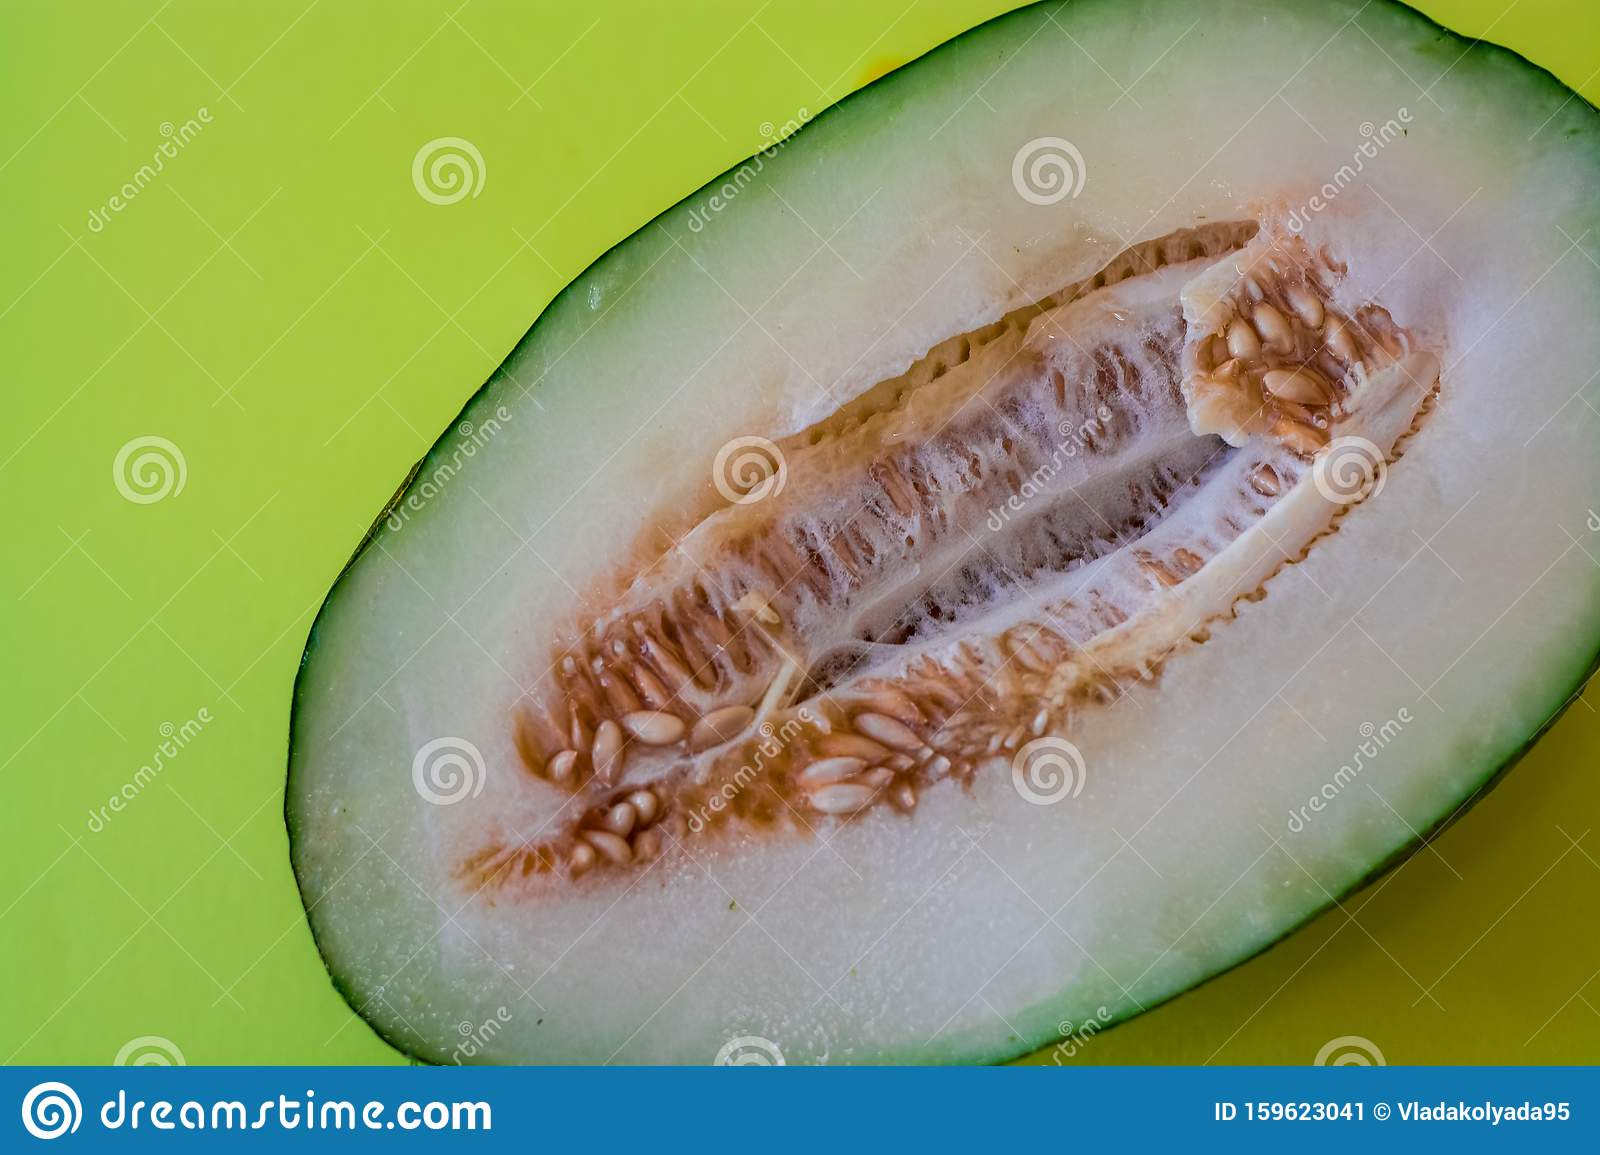 Half Of The Cut Ripe Melon With Seeds On One Ton Green Background Useful Fruit Summer Season Vitamins Stock Image Image Of Cantaloupe Melon 159623041 Read season 2 from the story cantaloupe by rindi009 with 4,002 reads. dreamstime com